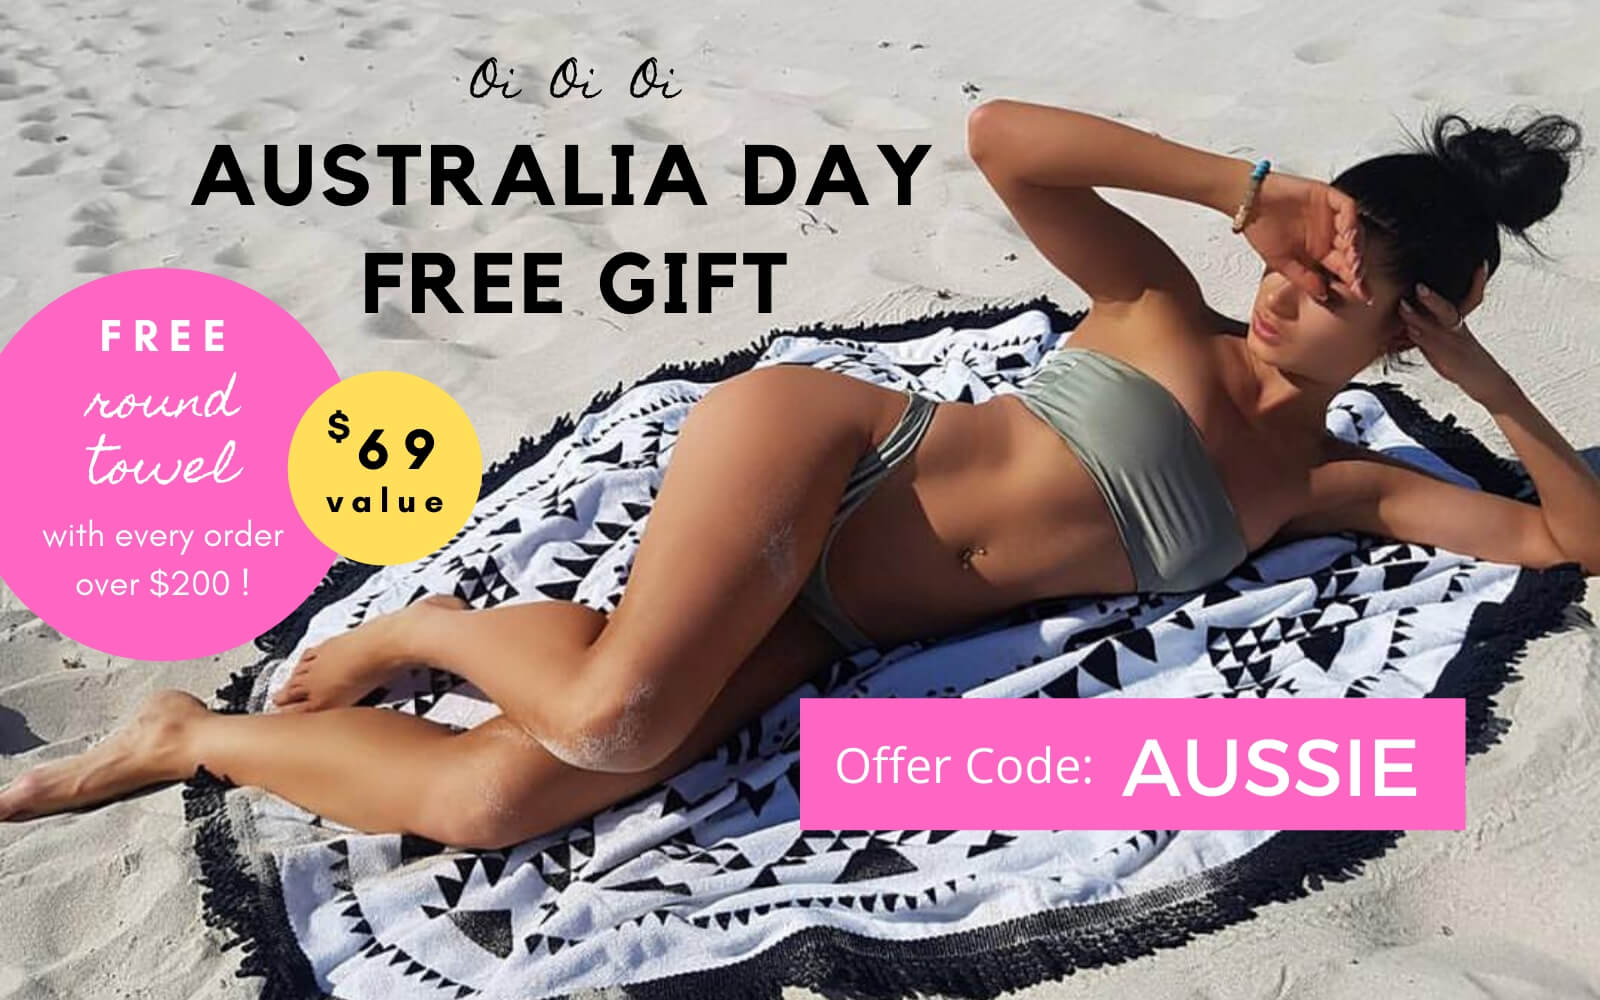 Chuchka Australia Day free round towel offer